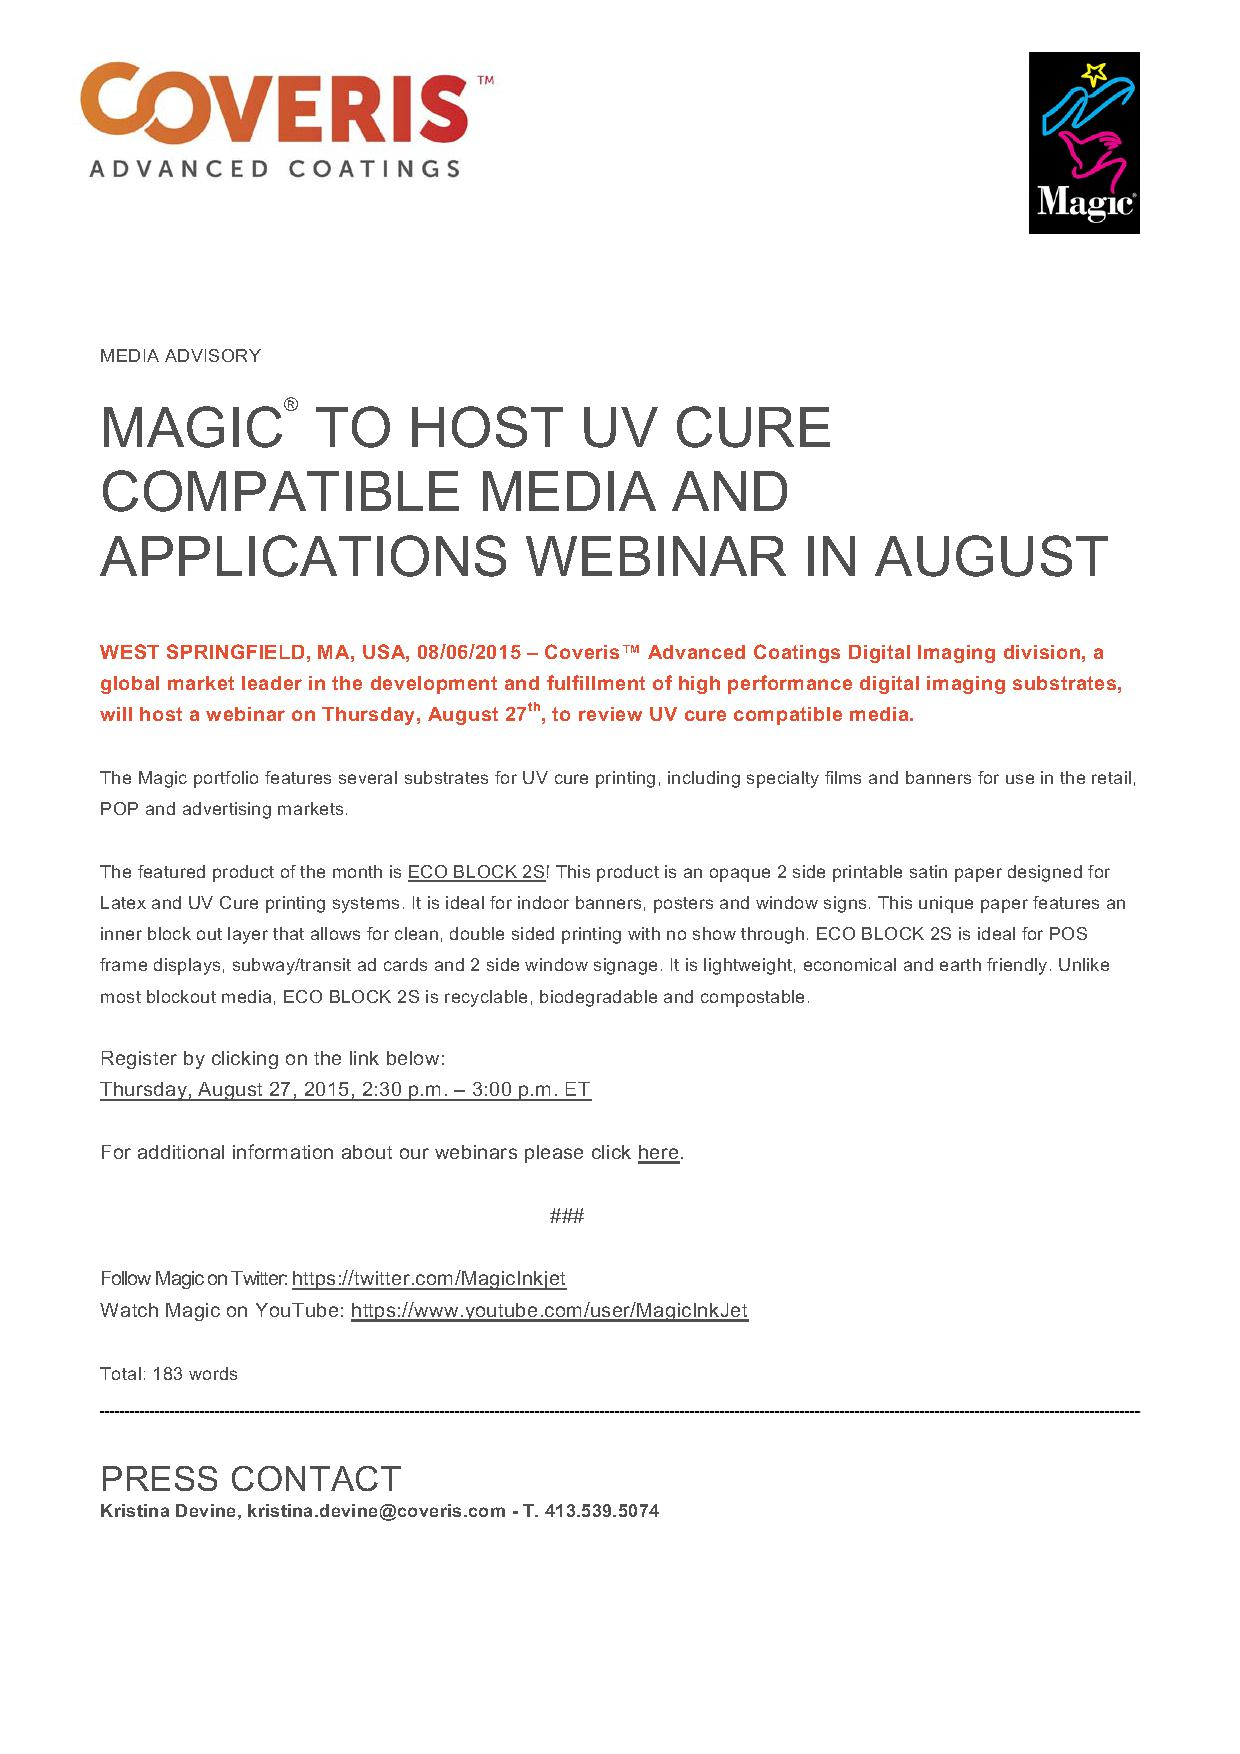 MAGIC® to host UV Cure Compatible Media Webinar in August